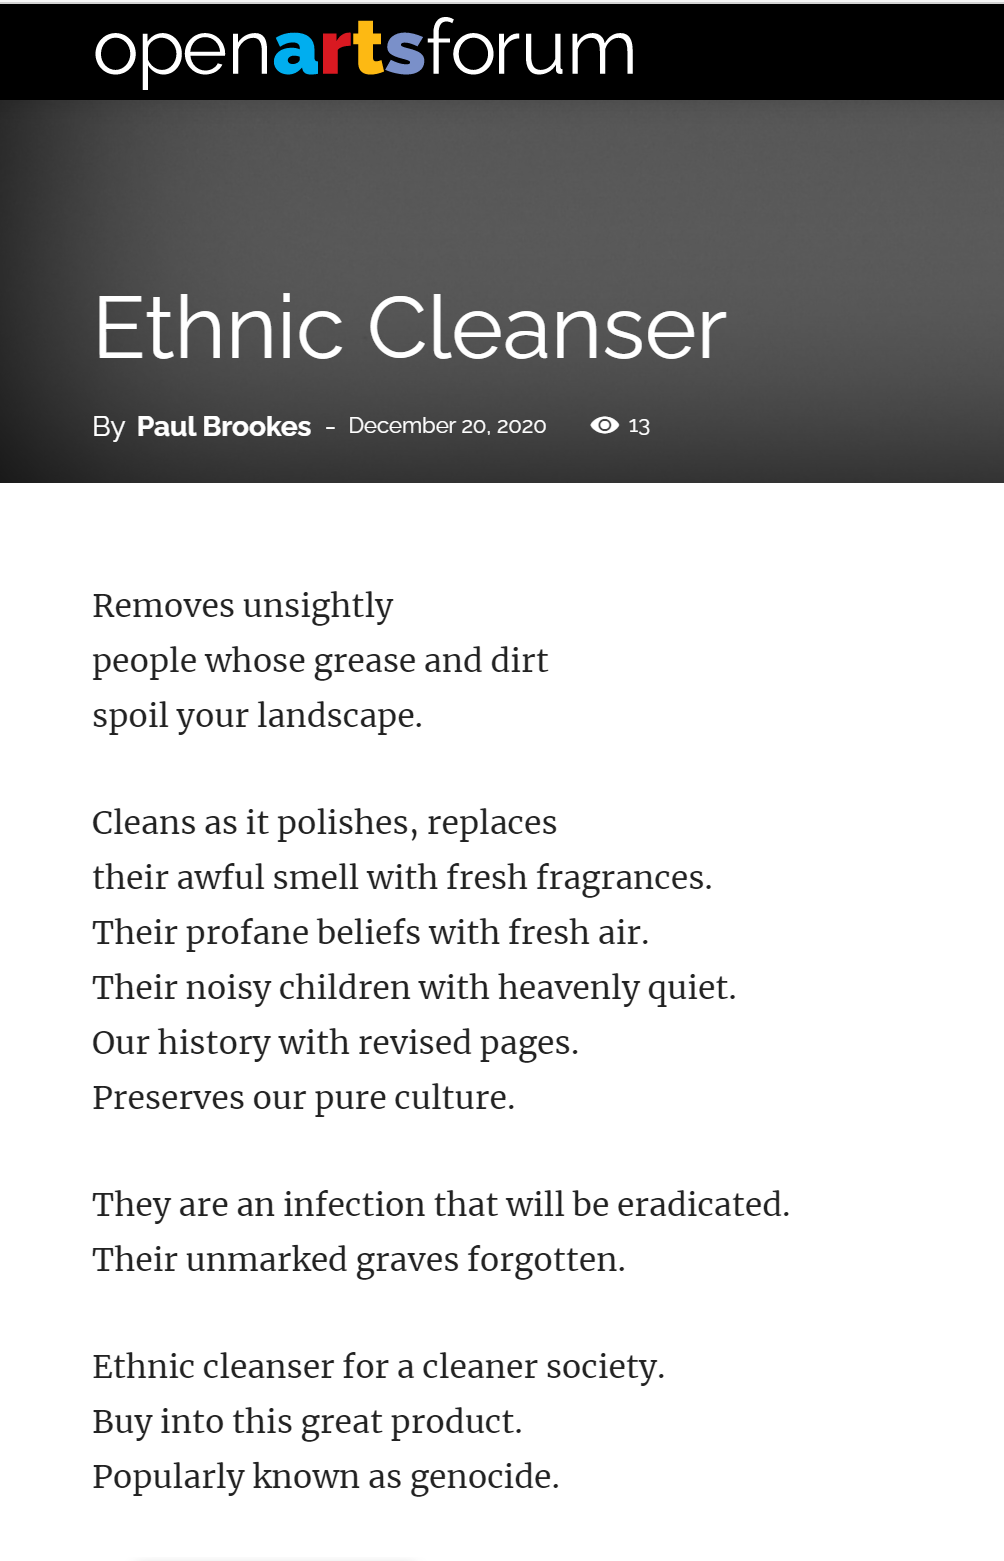 Ethnic Cleanser On OAF